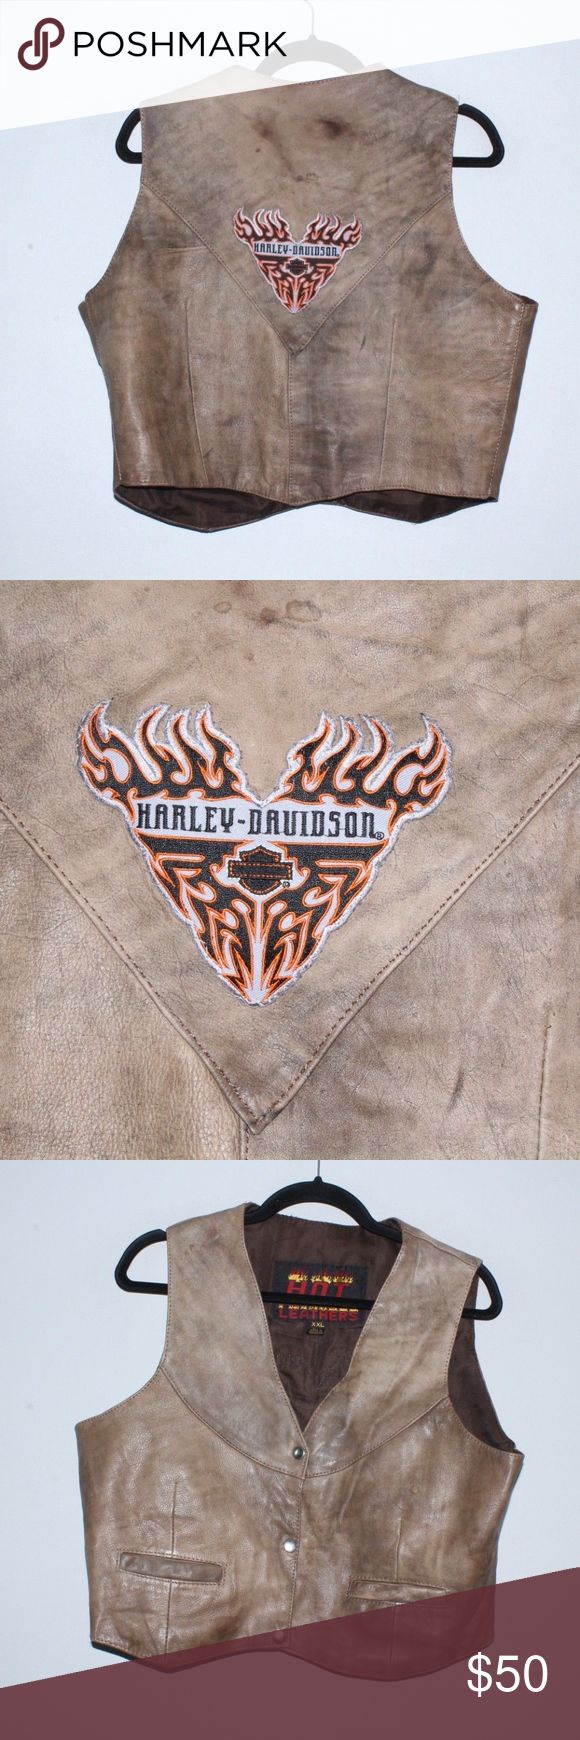 Vtg 90s Harley Davidson Motorcycle Leather Vest Vintage 90s Harley Davidson Motorcycle Leather Vest  Excellent jacket  Comes from a smoke-free household, marks on front and back  Brown  The size is 2XL and the measurements are 20.5 inches underarm to underarm and 22.5 inches top to bottom  Leather Check out my other items for sale!  L2 Harley-Davidson Jackets & Coats Vests